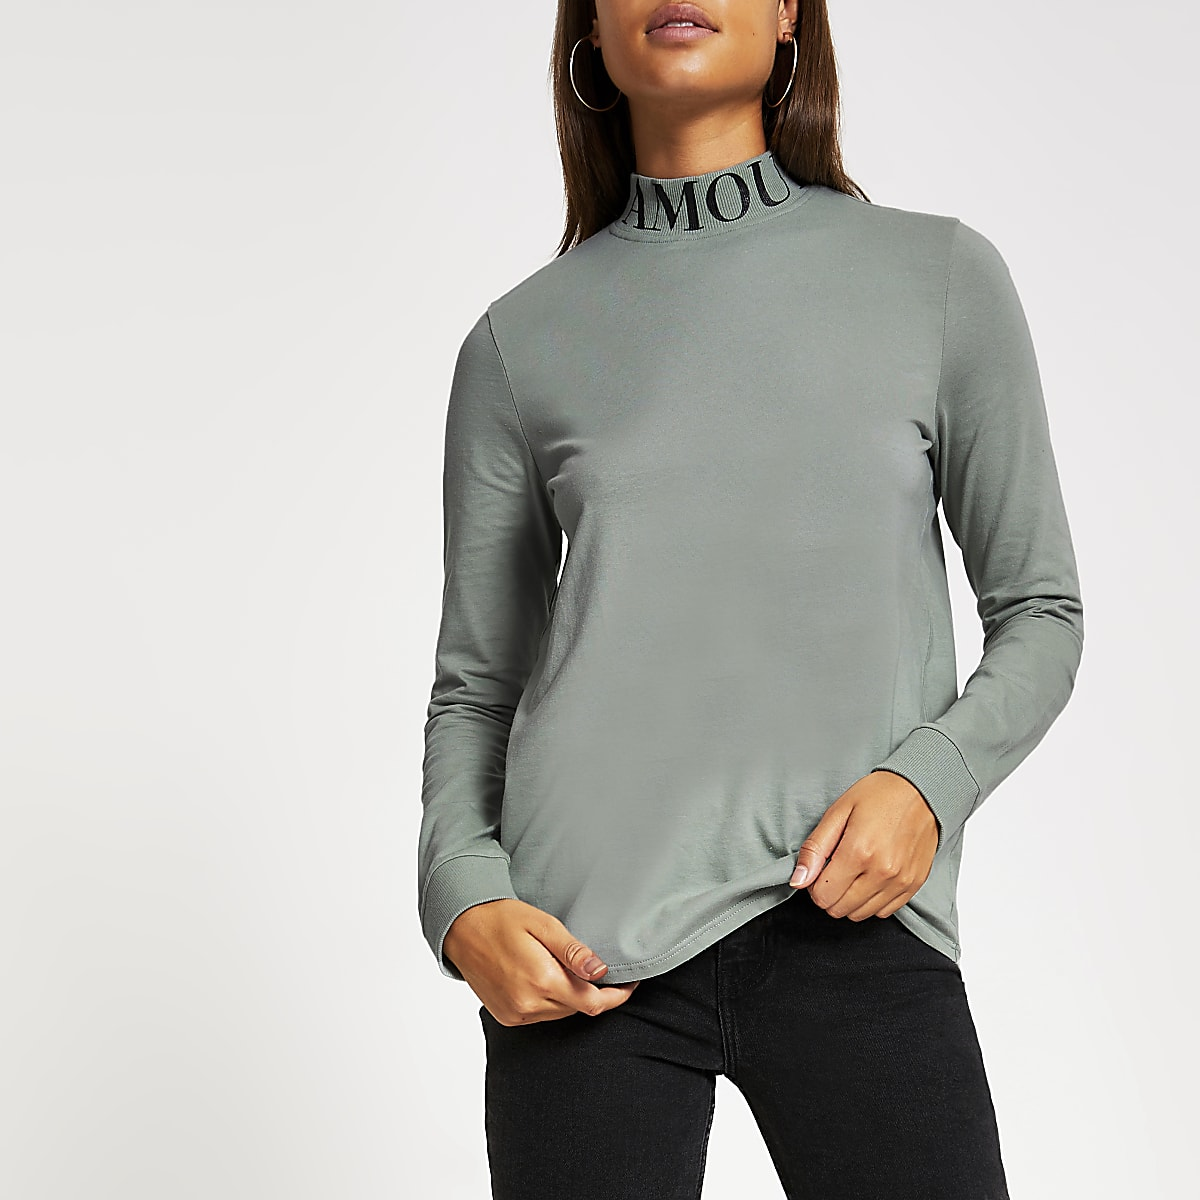 Green 'L'amour' printed high neck T-shirt